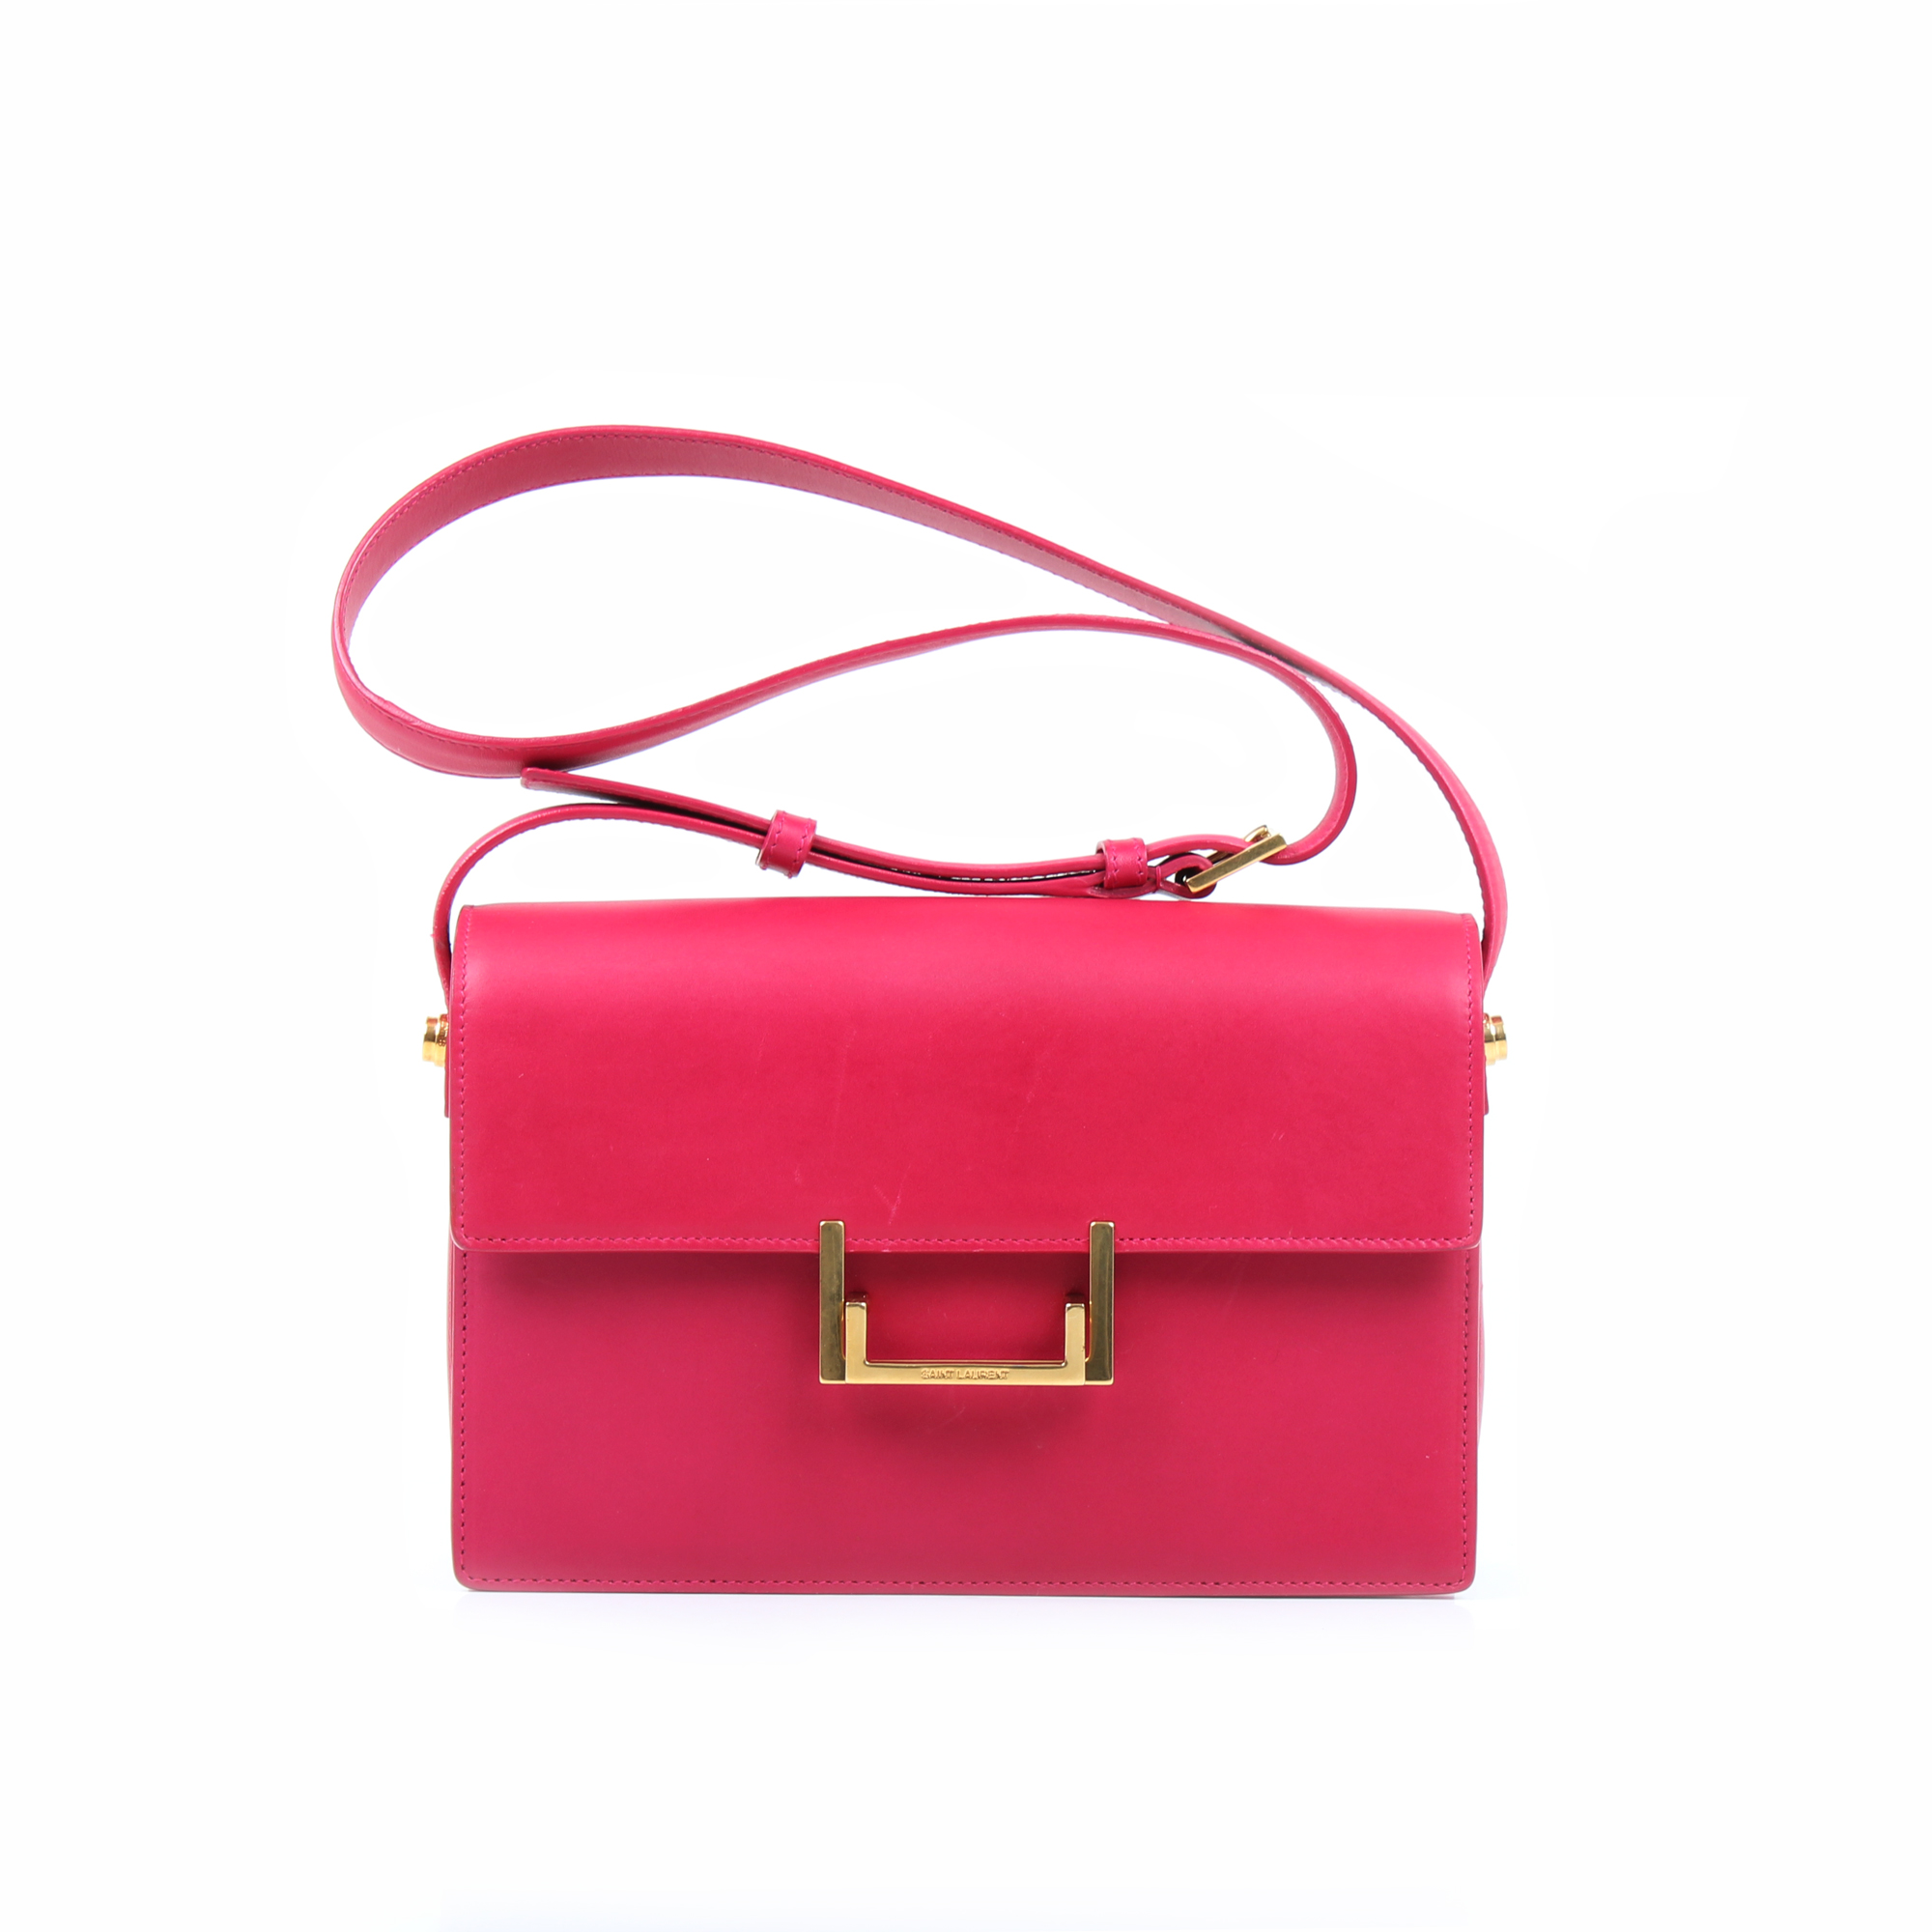 Front image of Yves Saint Laurent Lulu shoulder bag